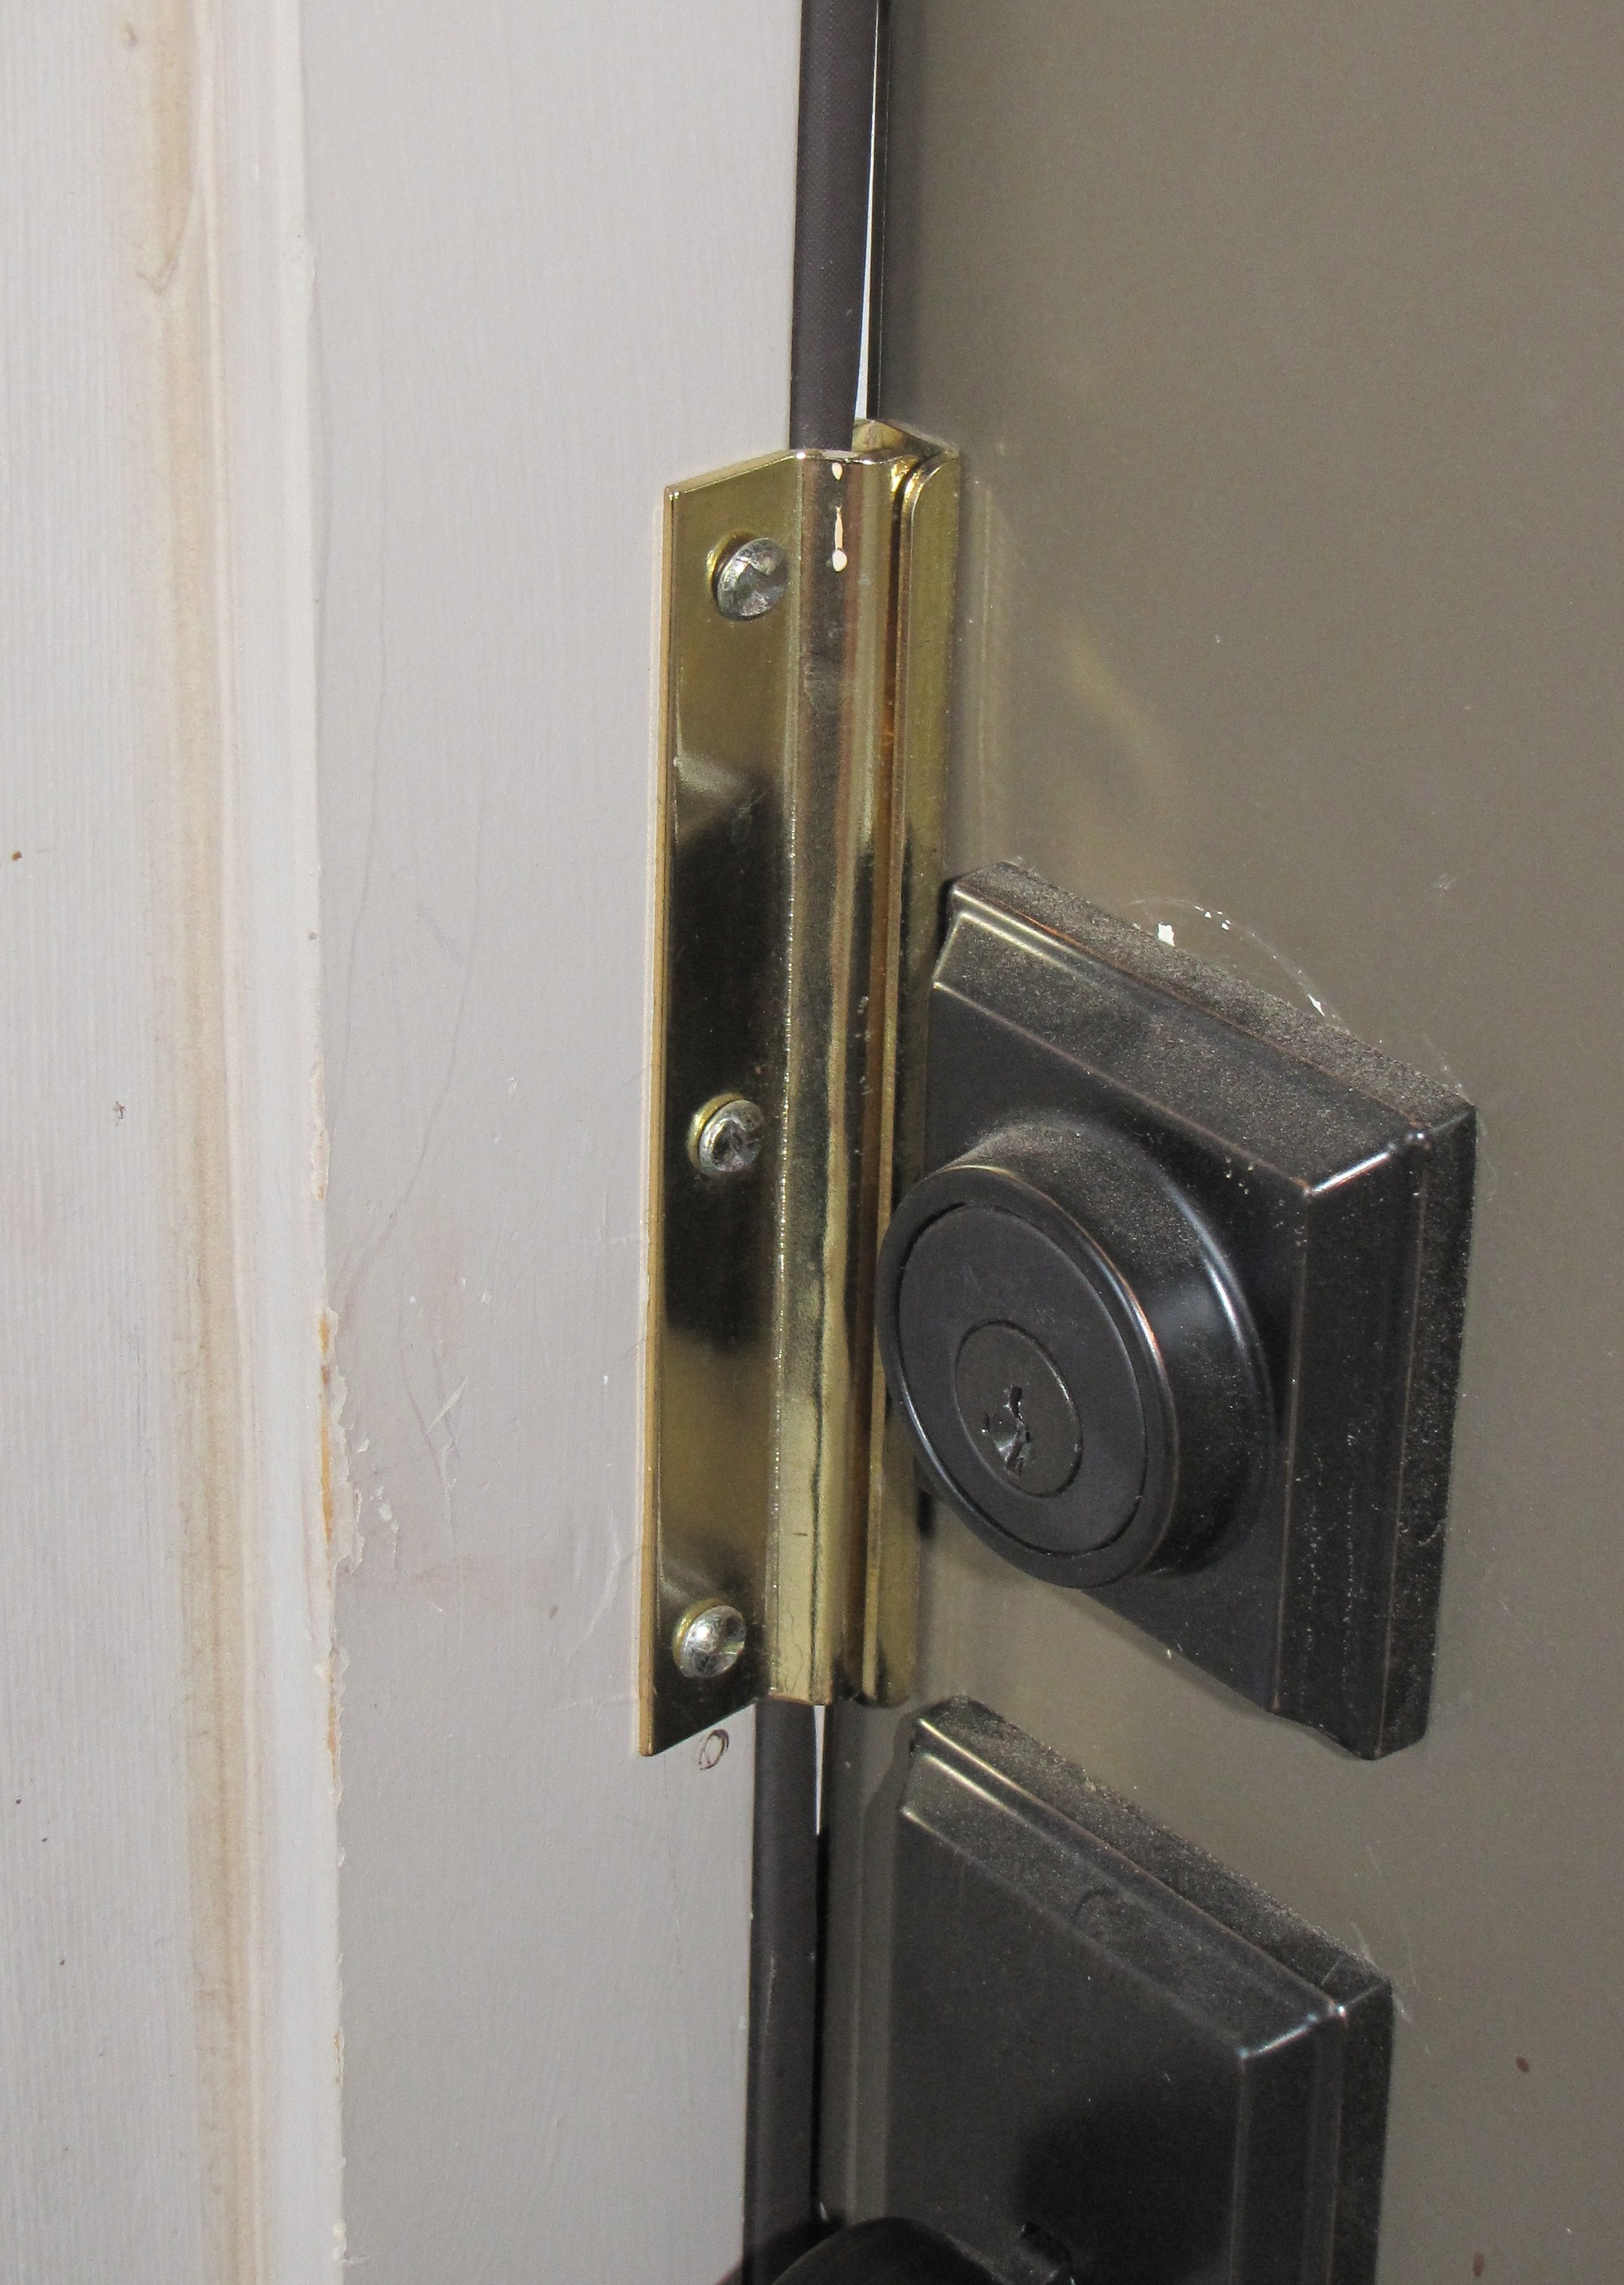 Image of an anti-pry shield for doors and windows